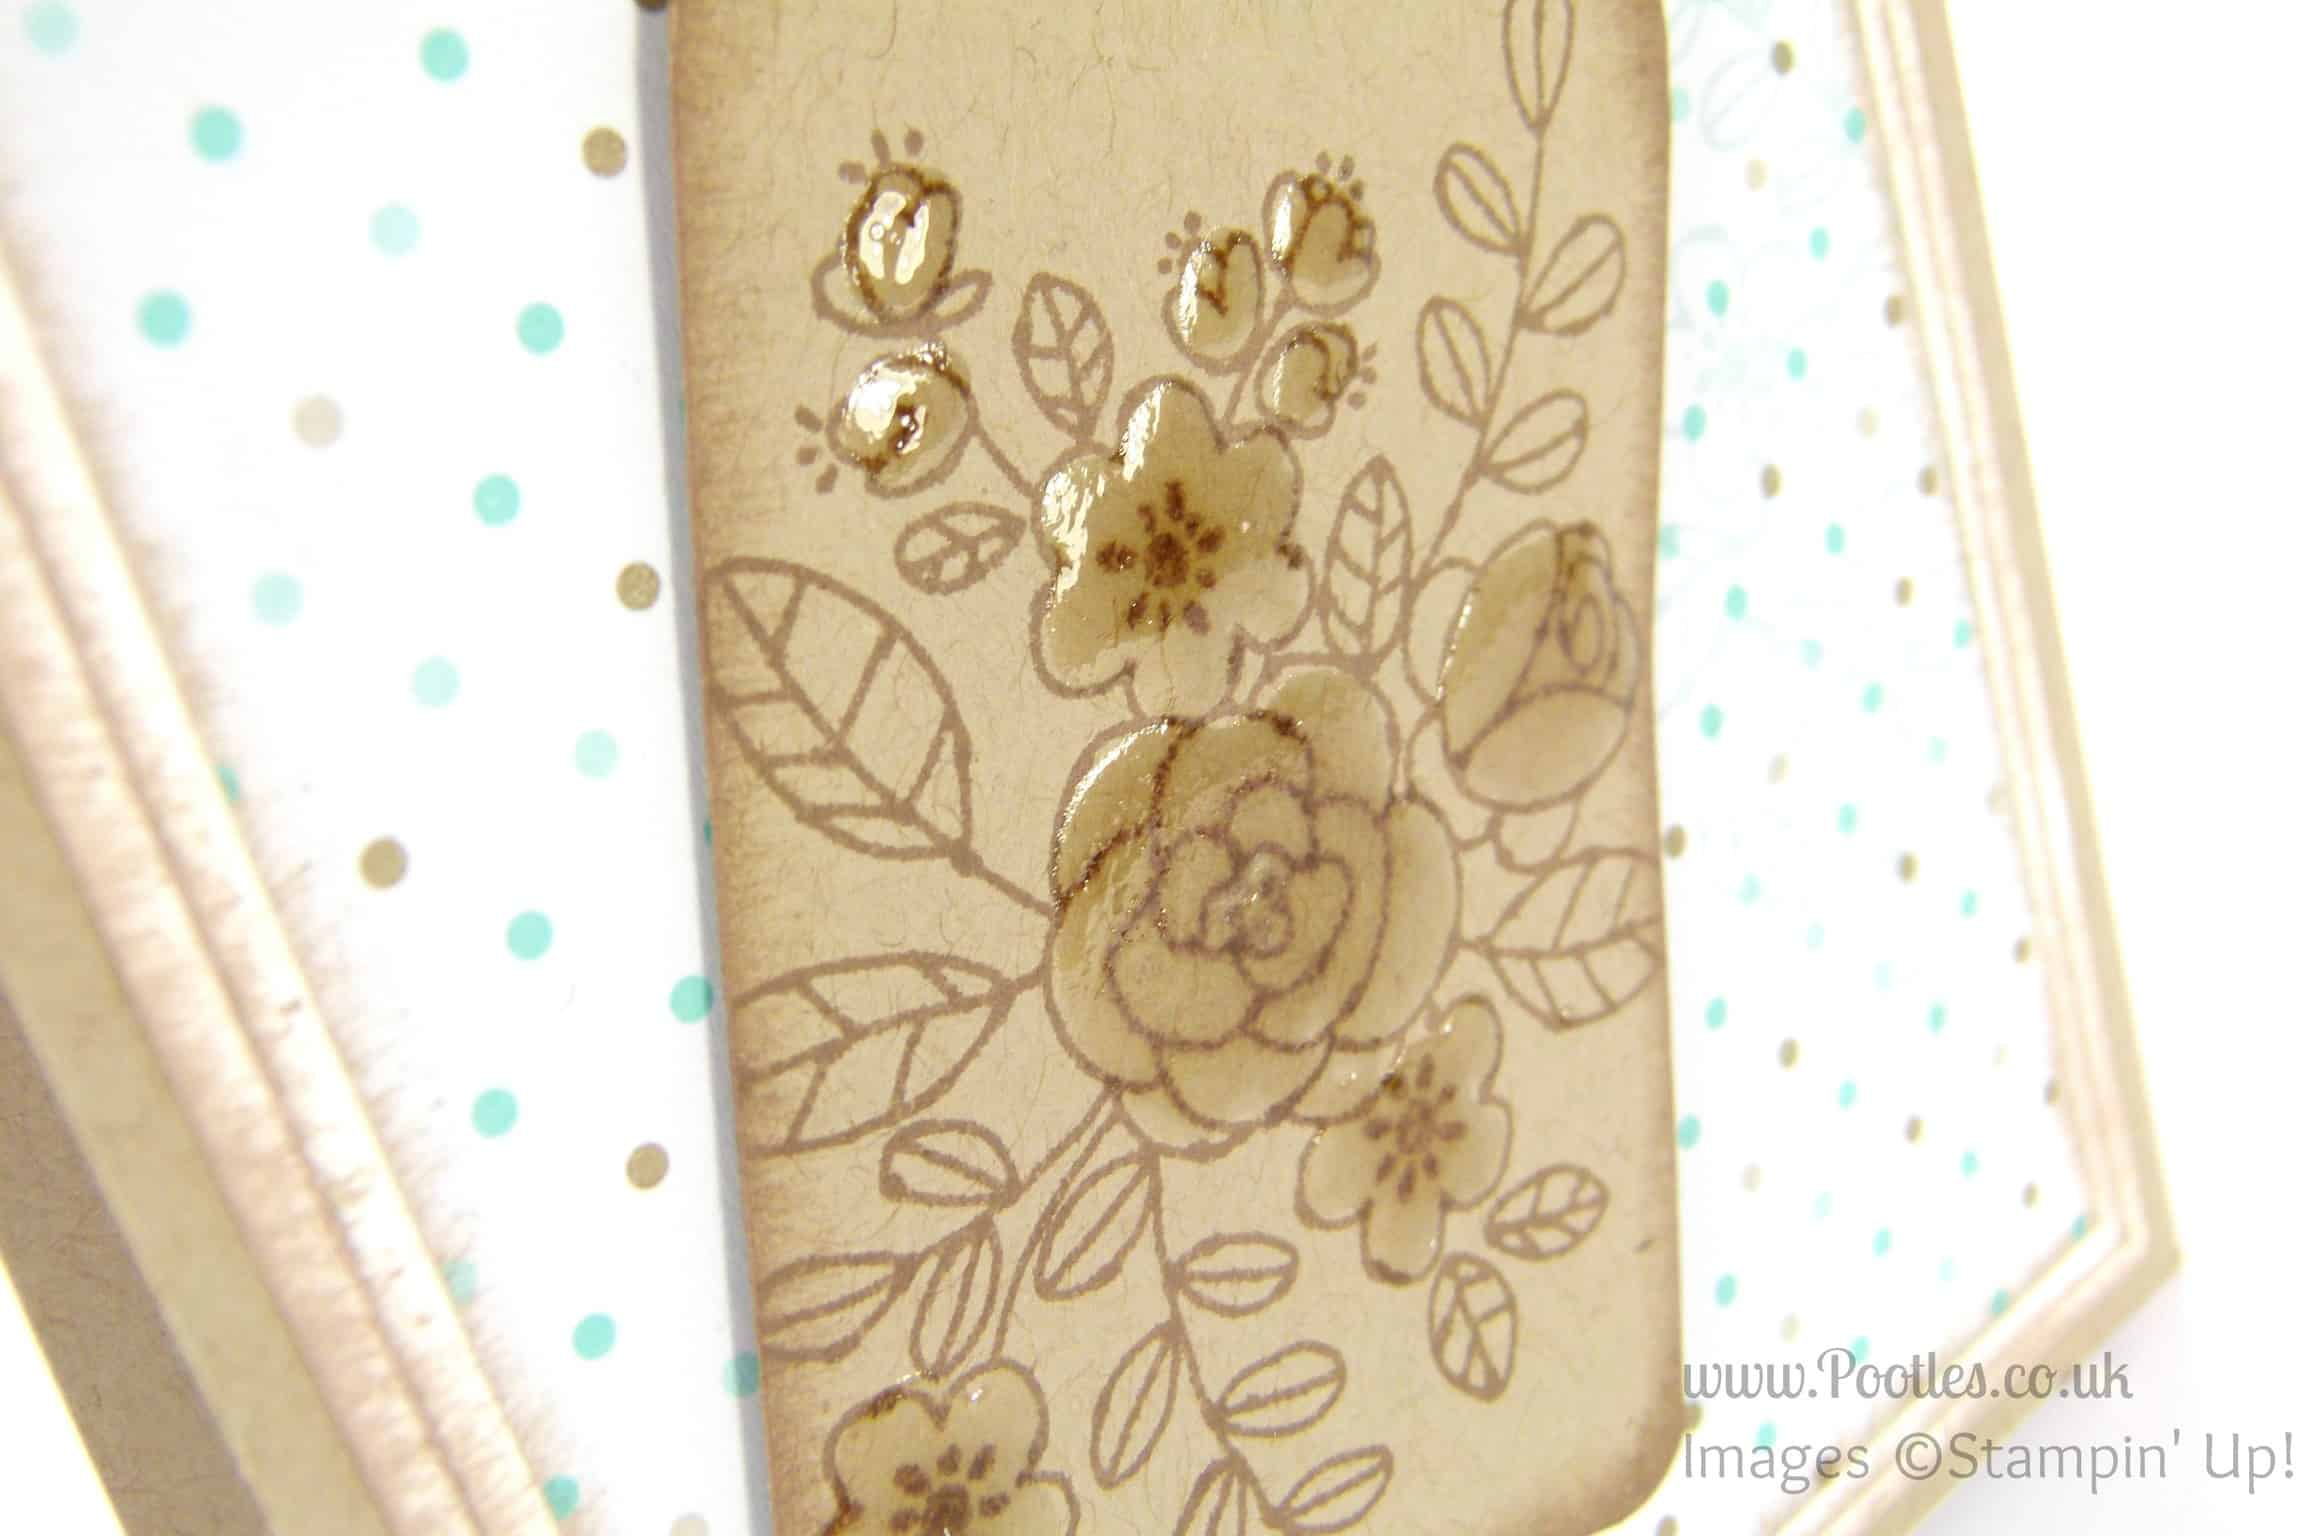 Stampin' Up! UK Independent Demonstrator - Pootles. So Very Grateful for the Tag Topper Punch... close up